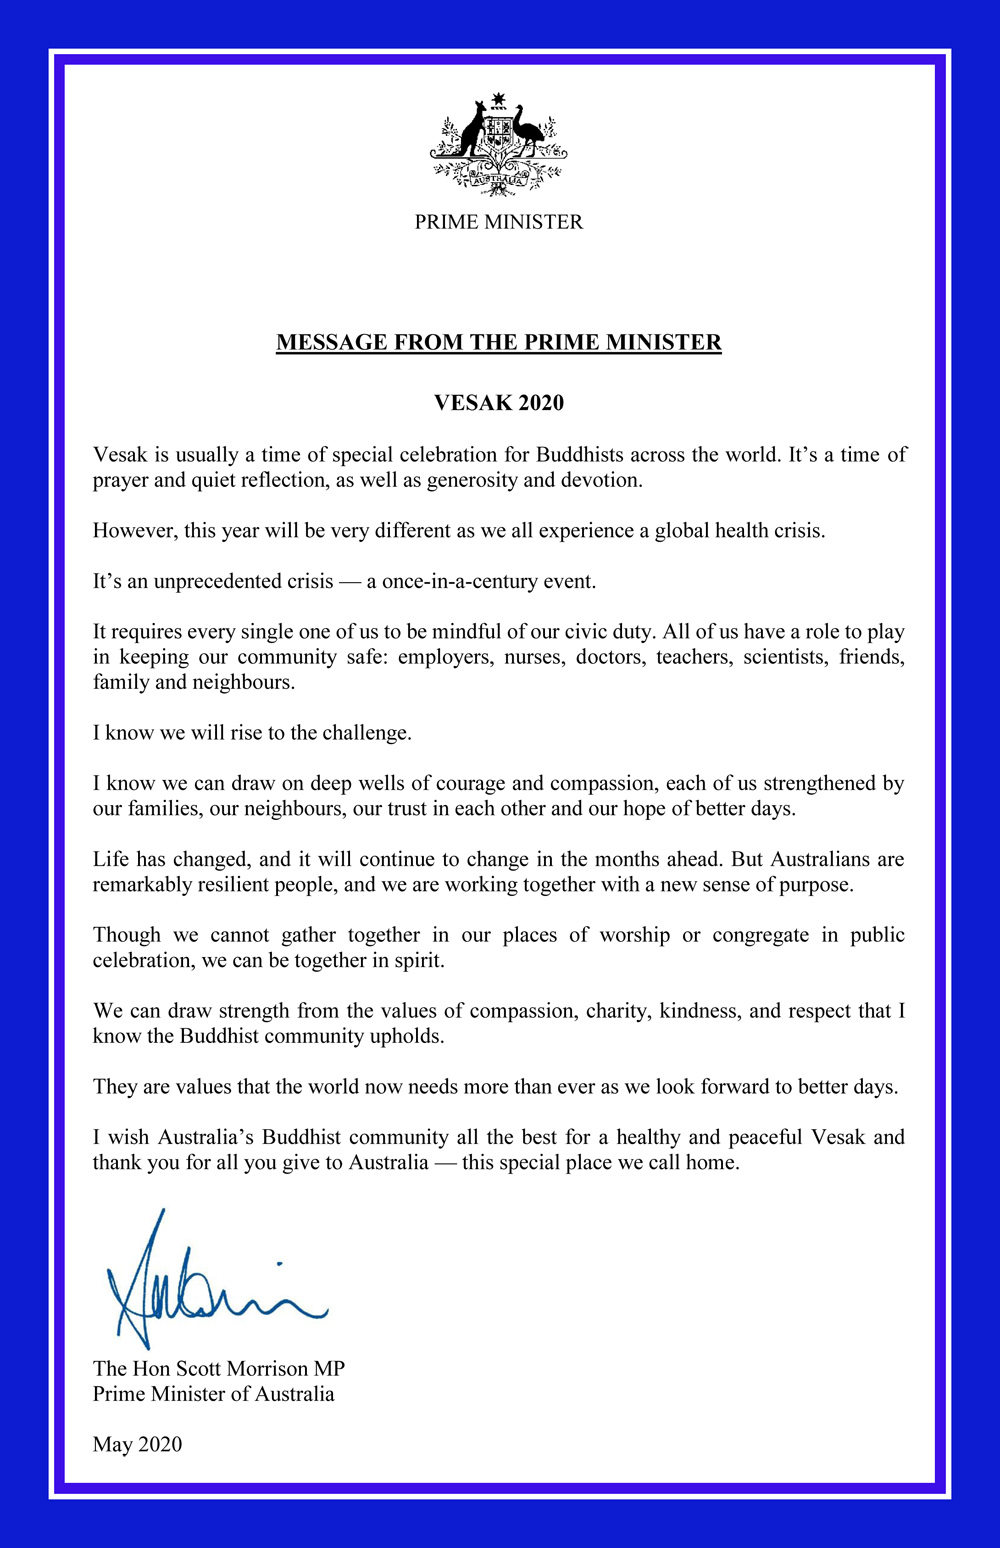 Vesak 2020_The Hon Scott Morrison